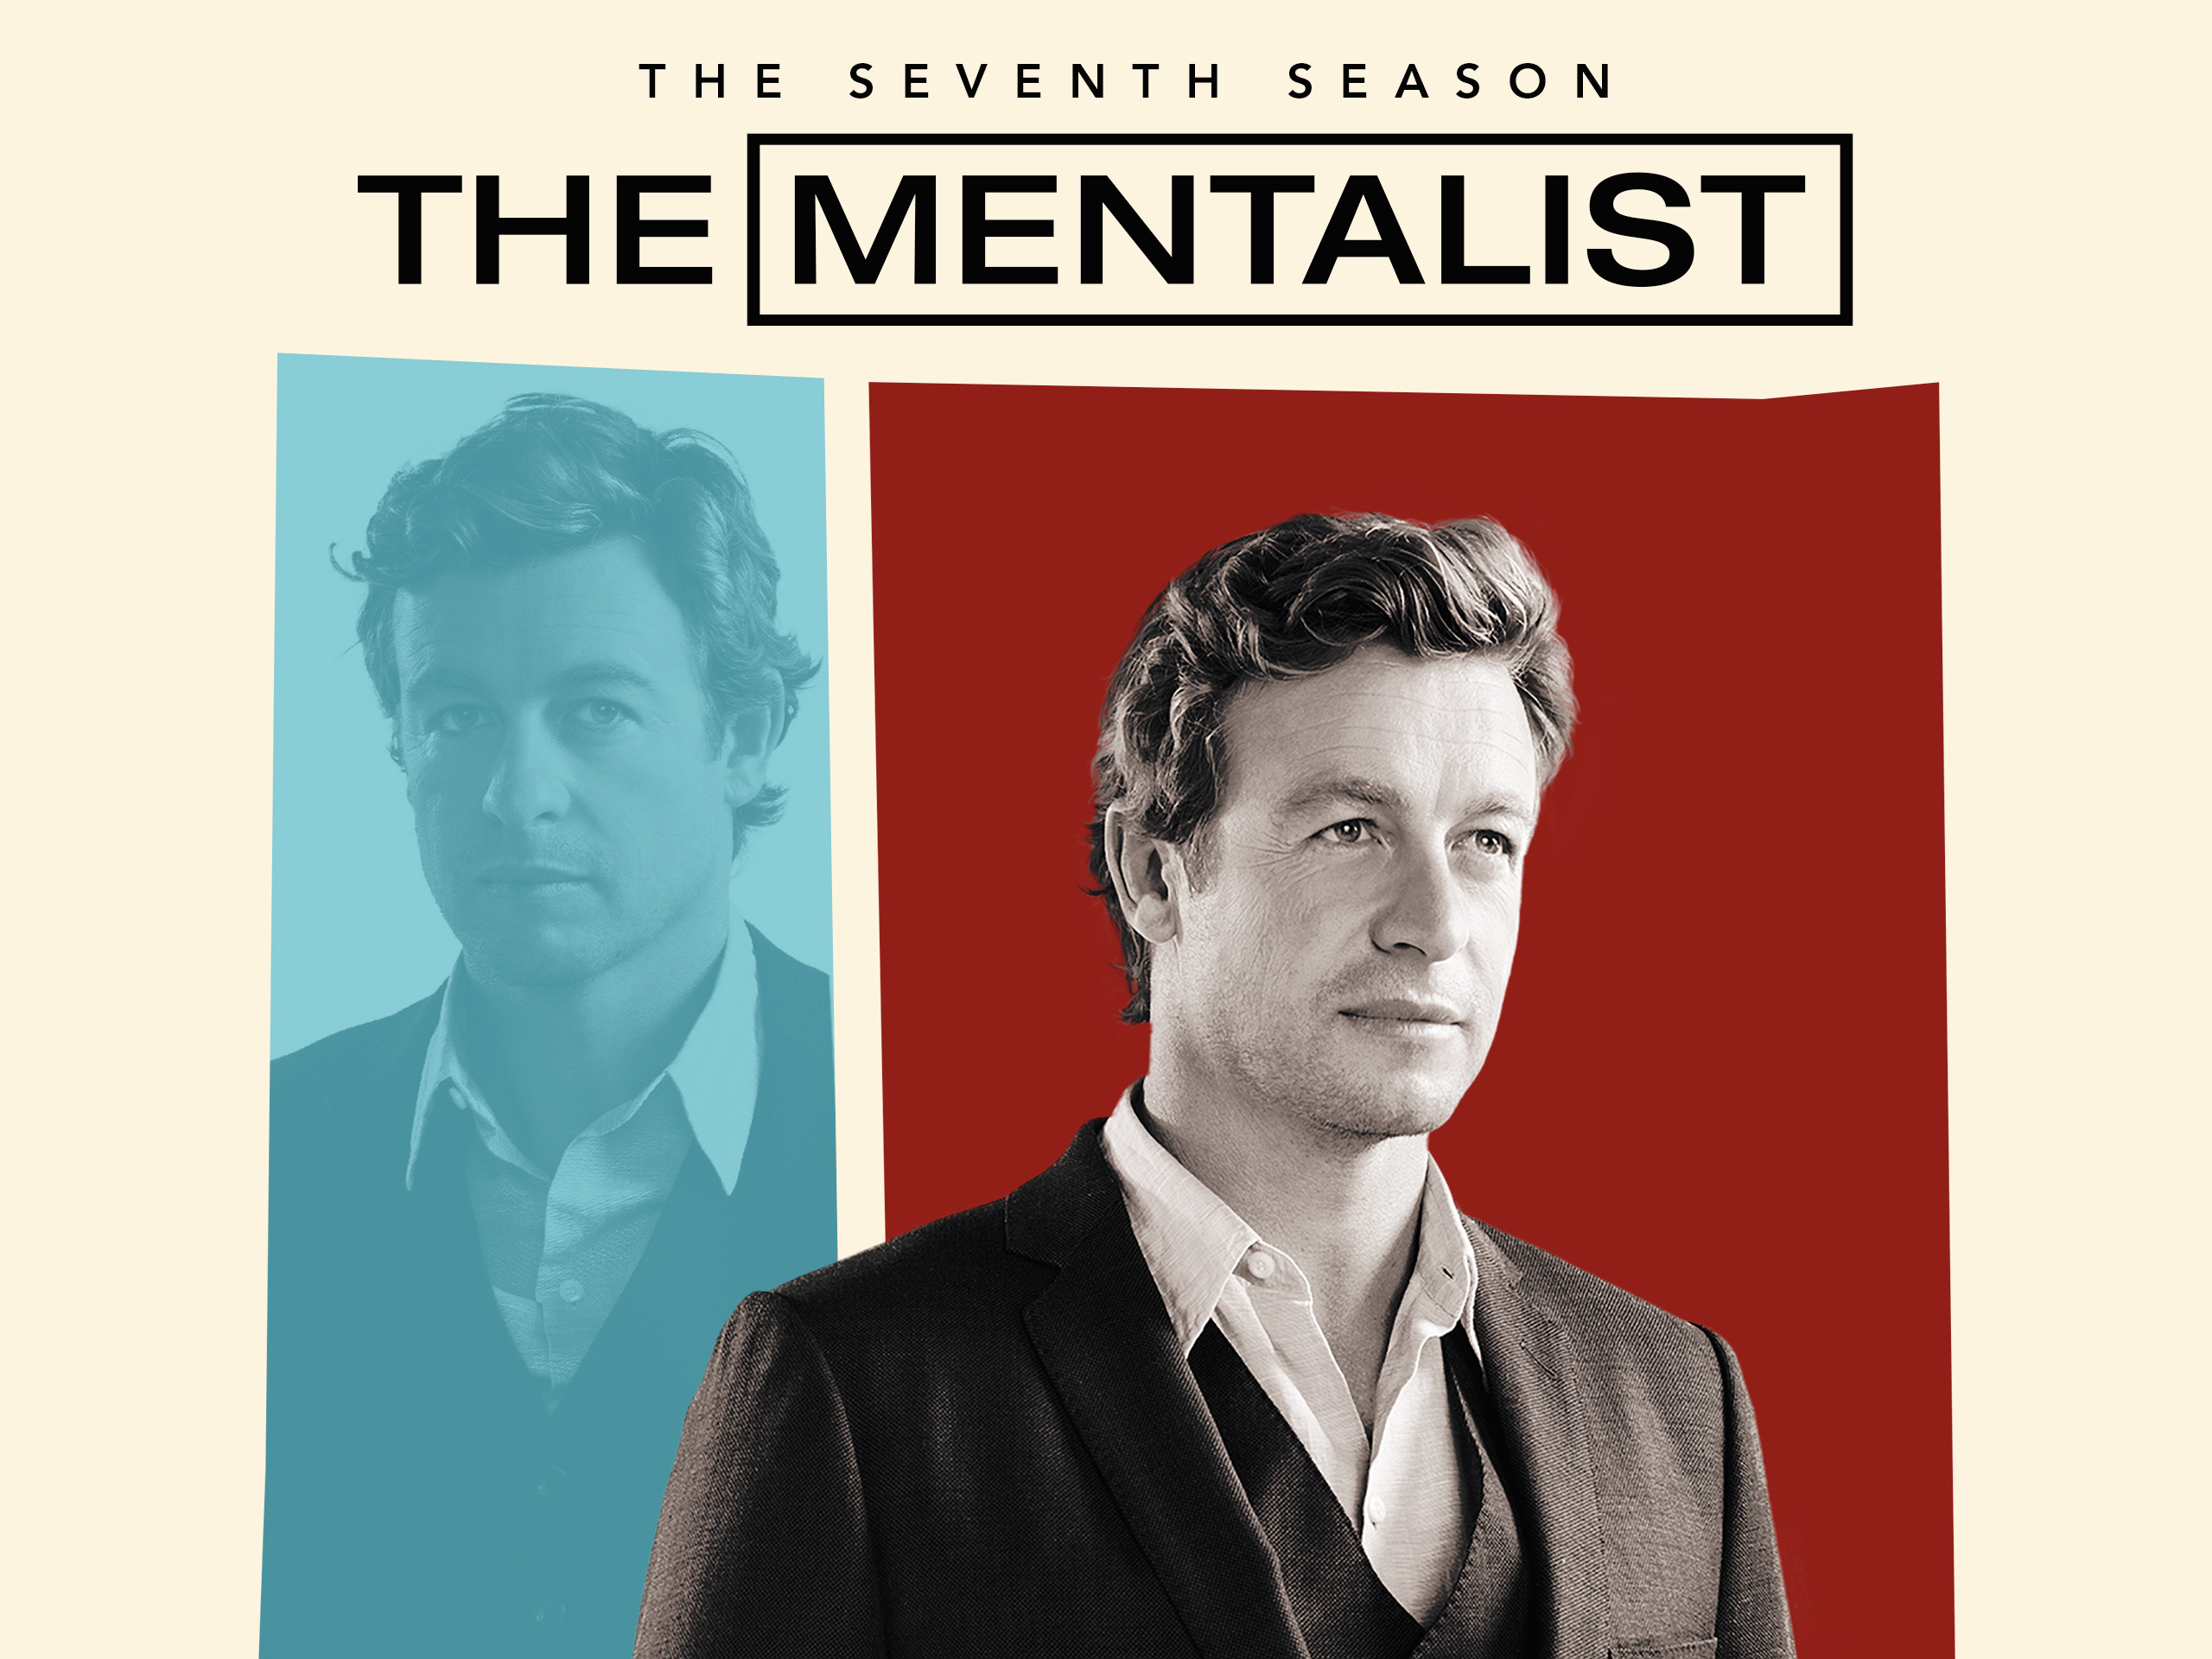 Prime Video: The Mentalist - Season 7